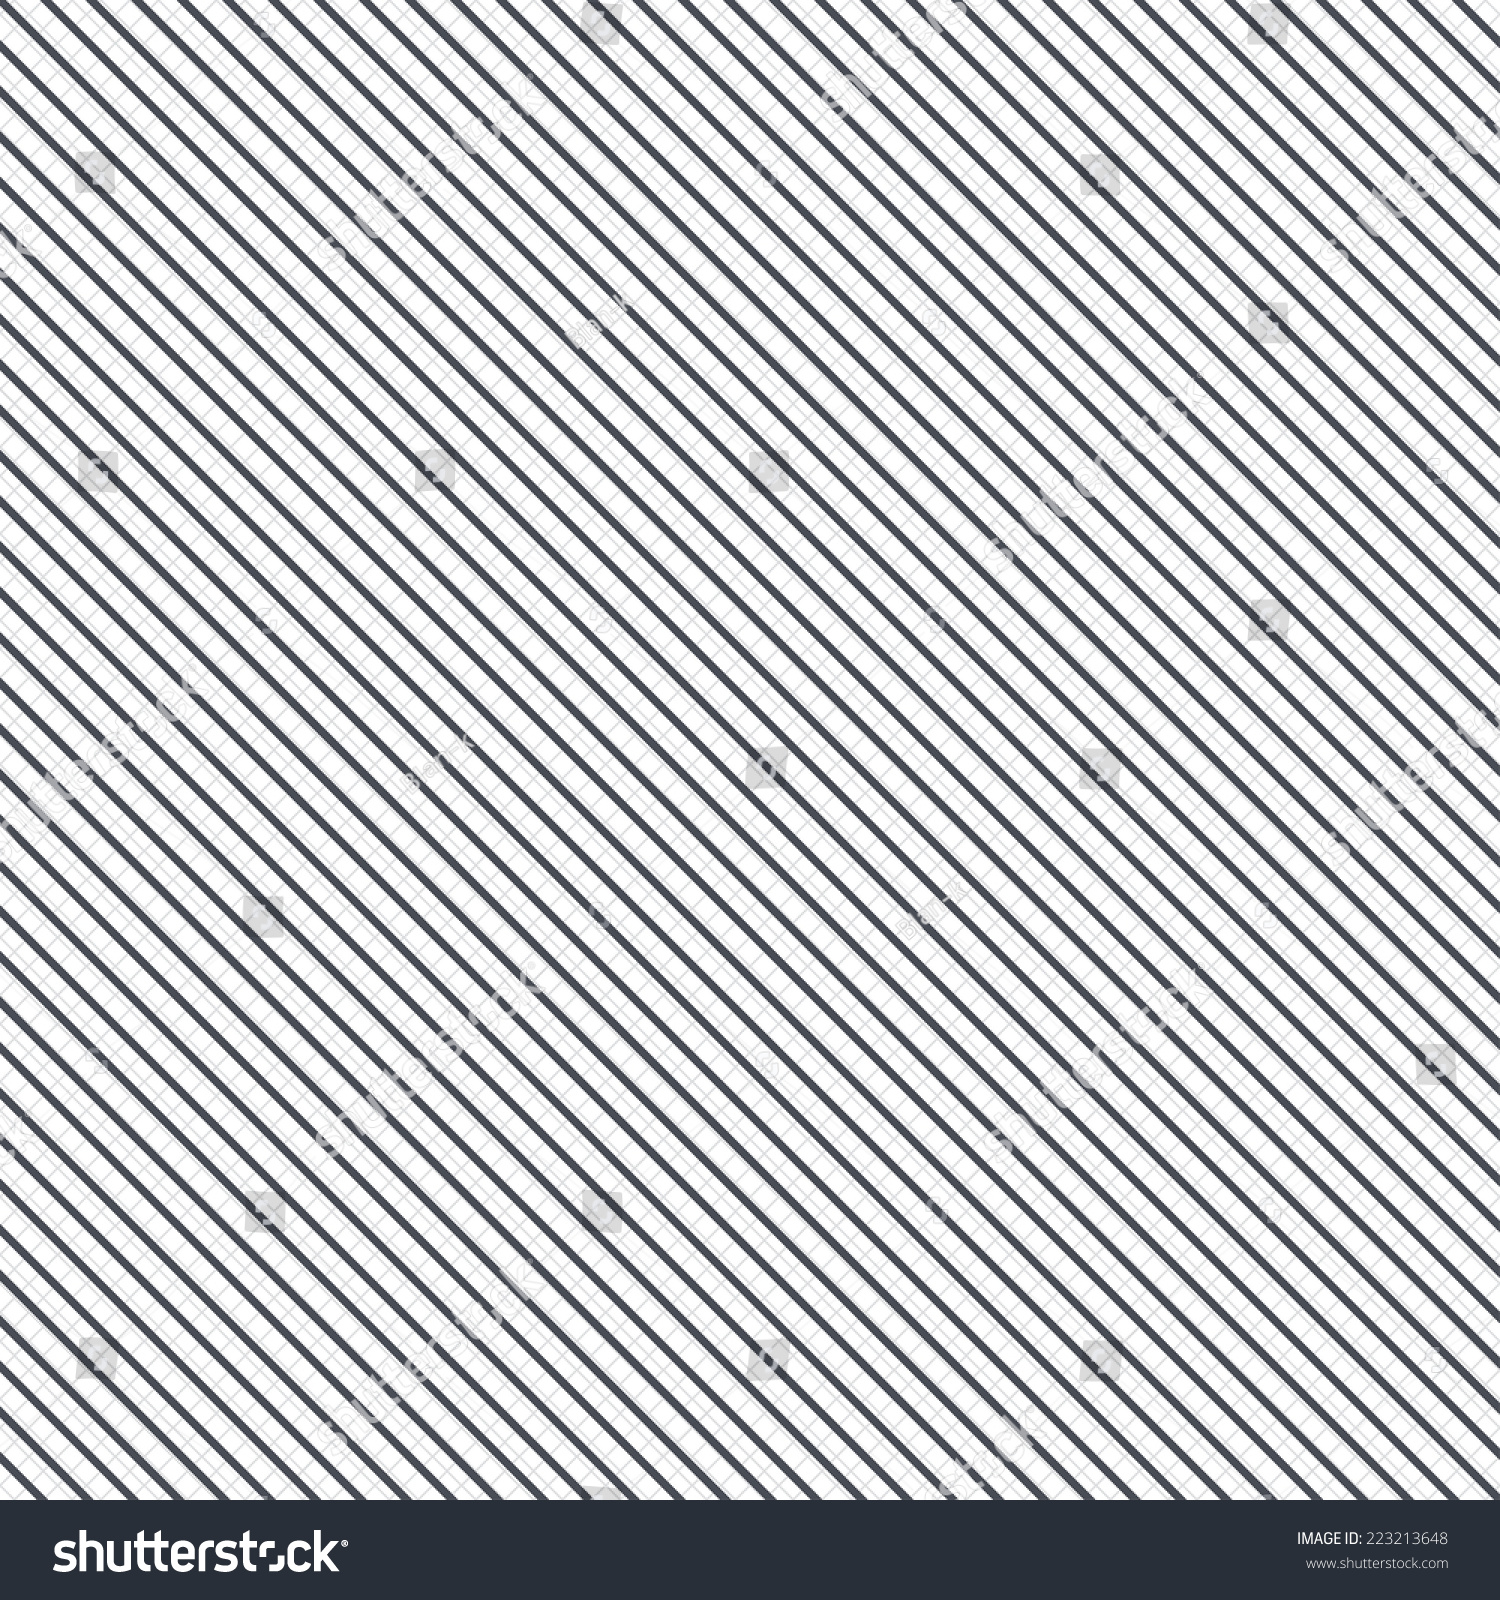 Line Texture Background : Diagonal lines pattern background abstract wallpaper stock